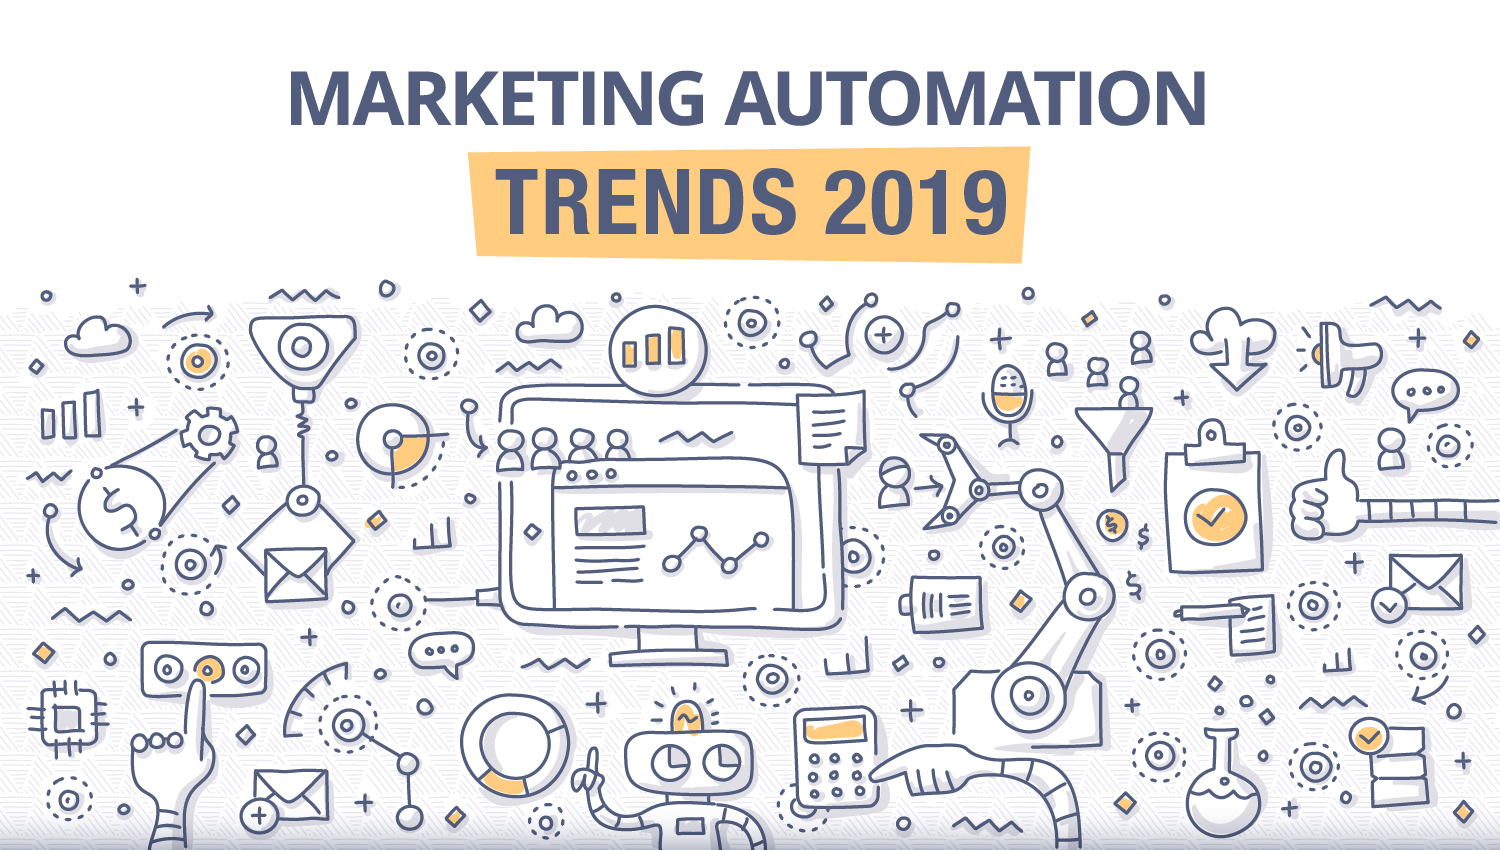 E-Mail-Marketing Trends 2019 Marketing Automation